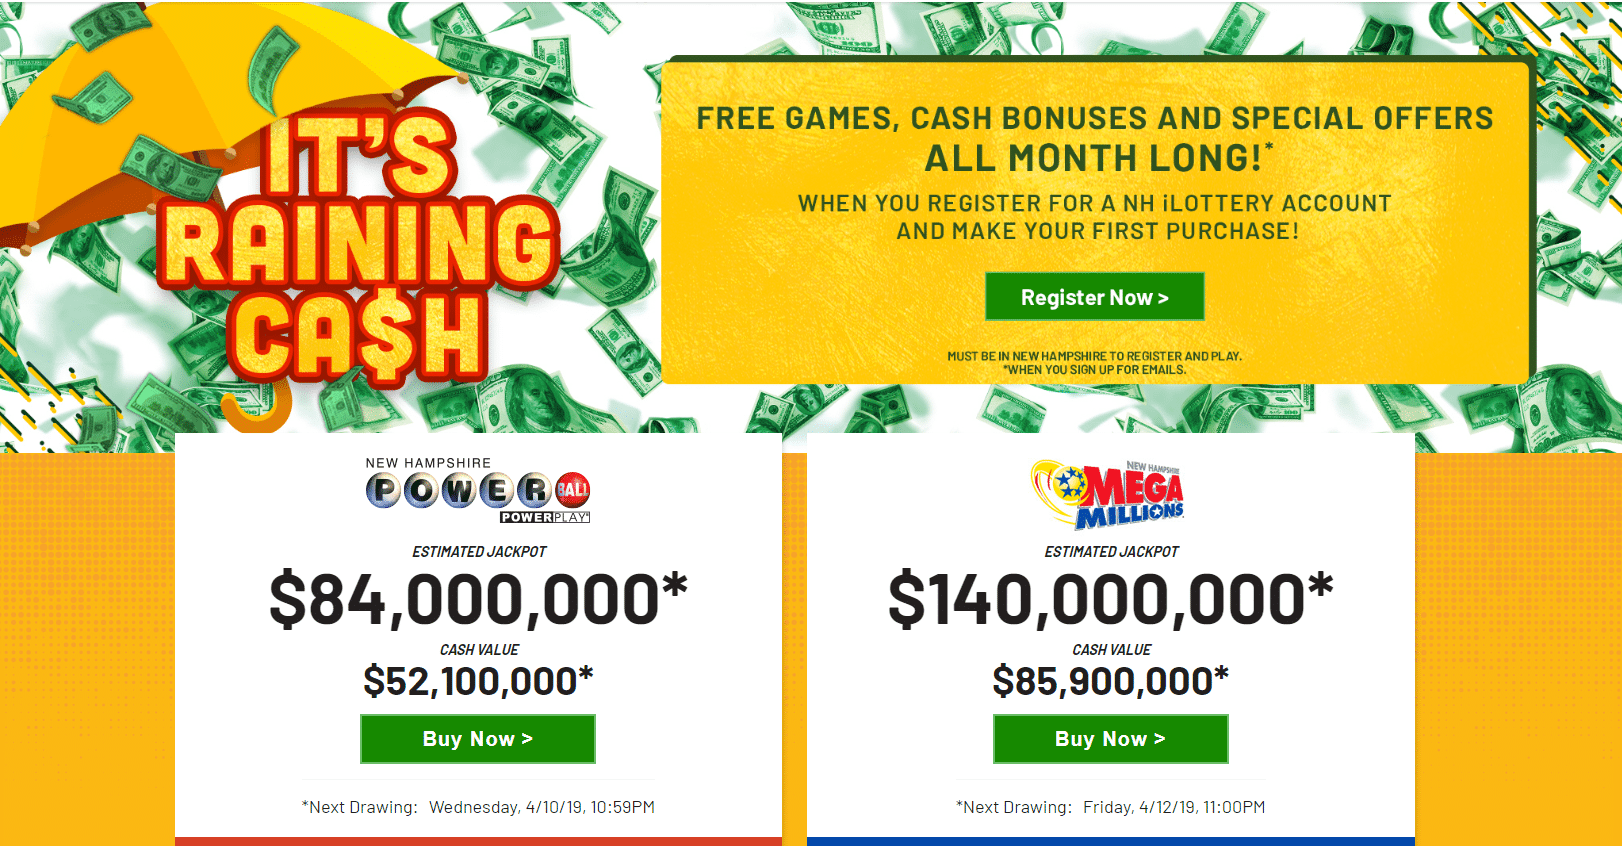 NH Lottery Promo Code 2019: Free Games and Rewards